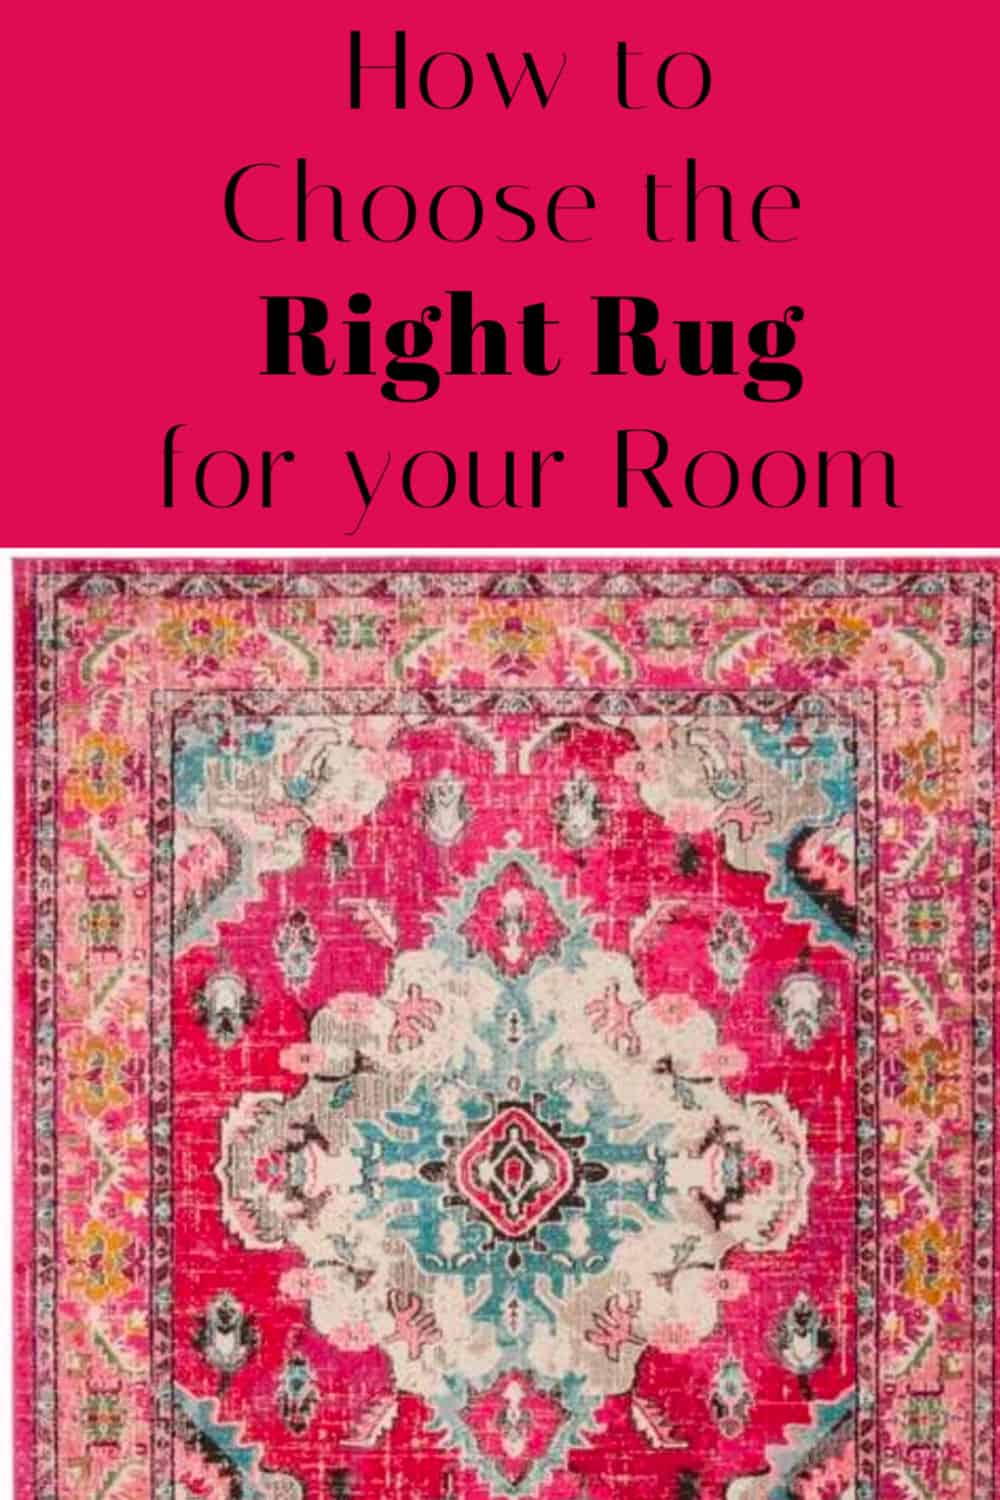 How to Choose the right rug for your room.